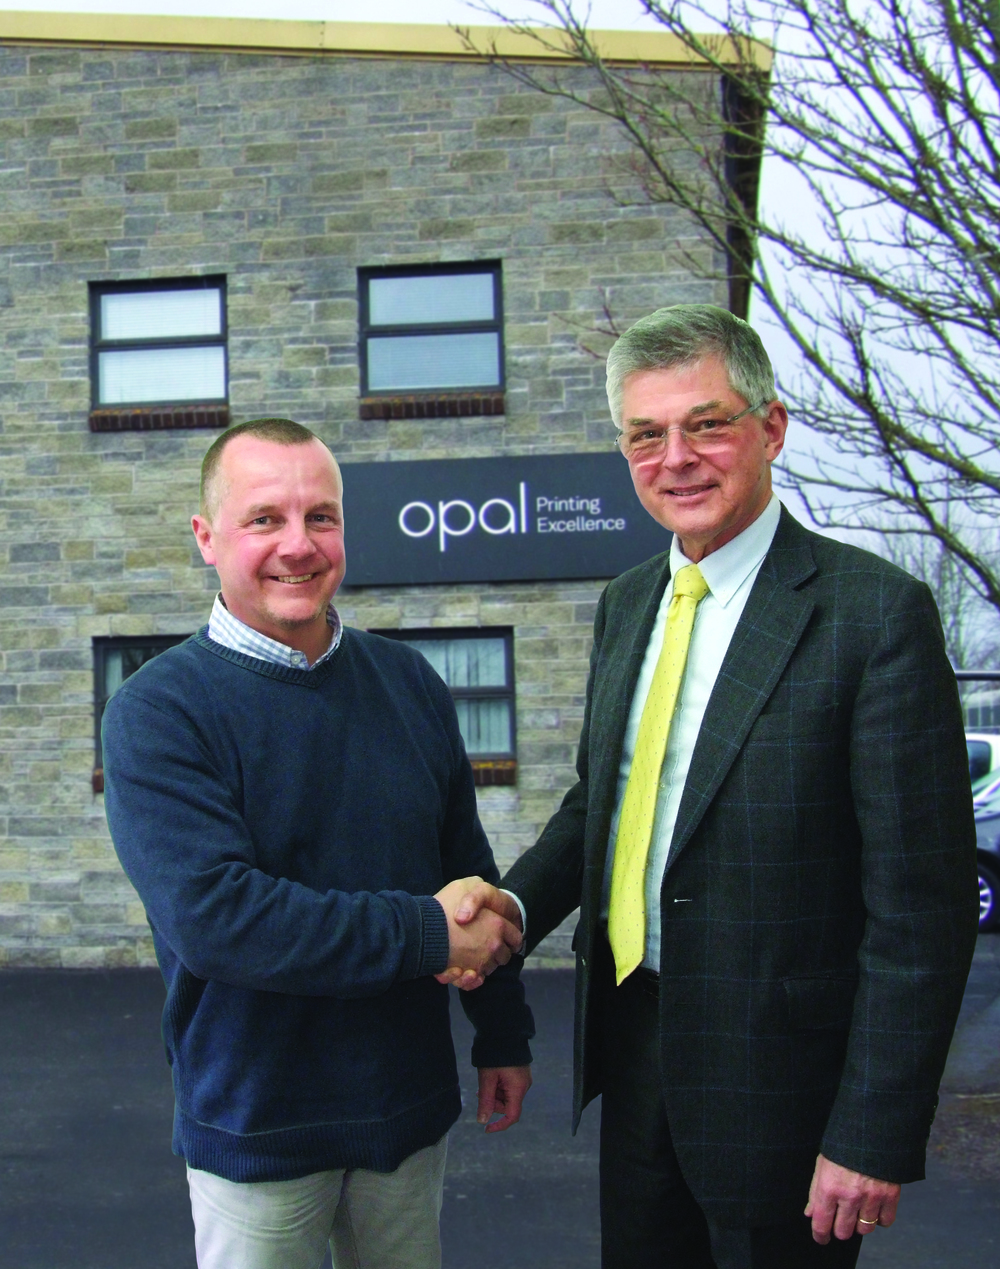 Keith Lunt (Opal Print MD) with Claus Nielsen (AMS UK).